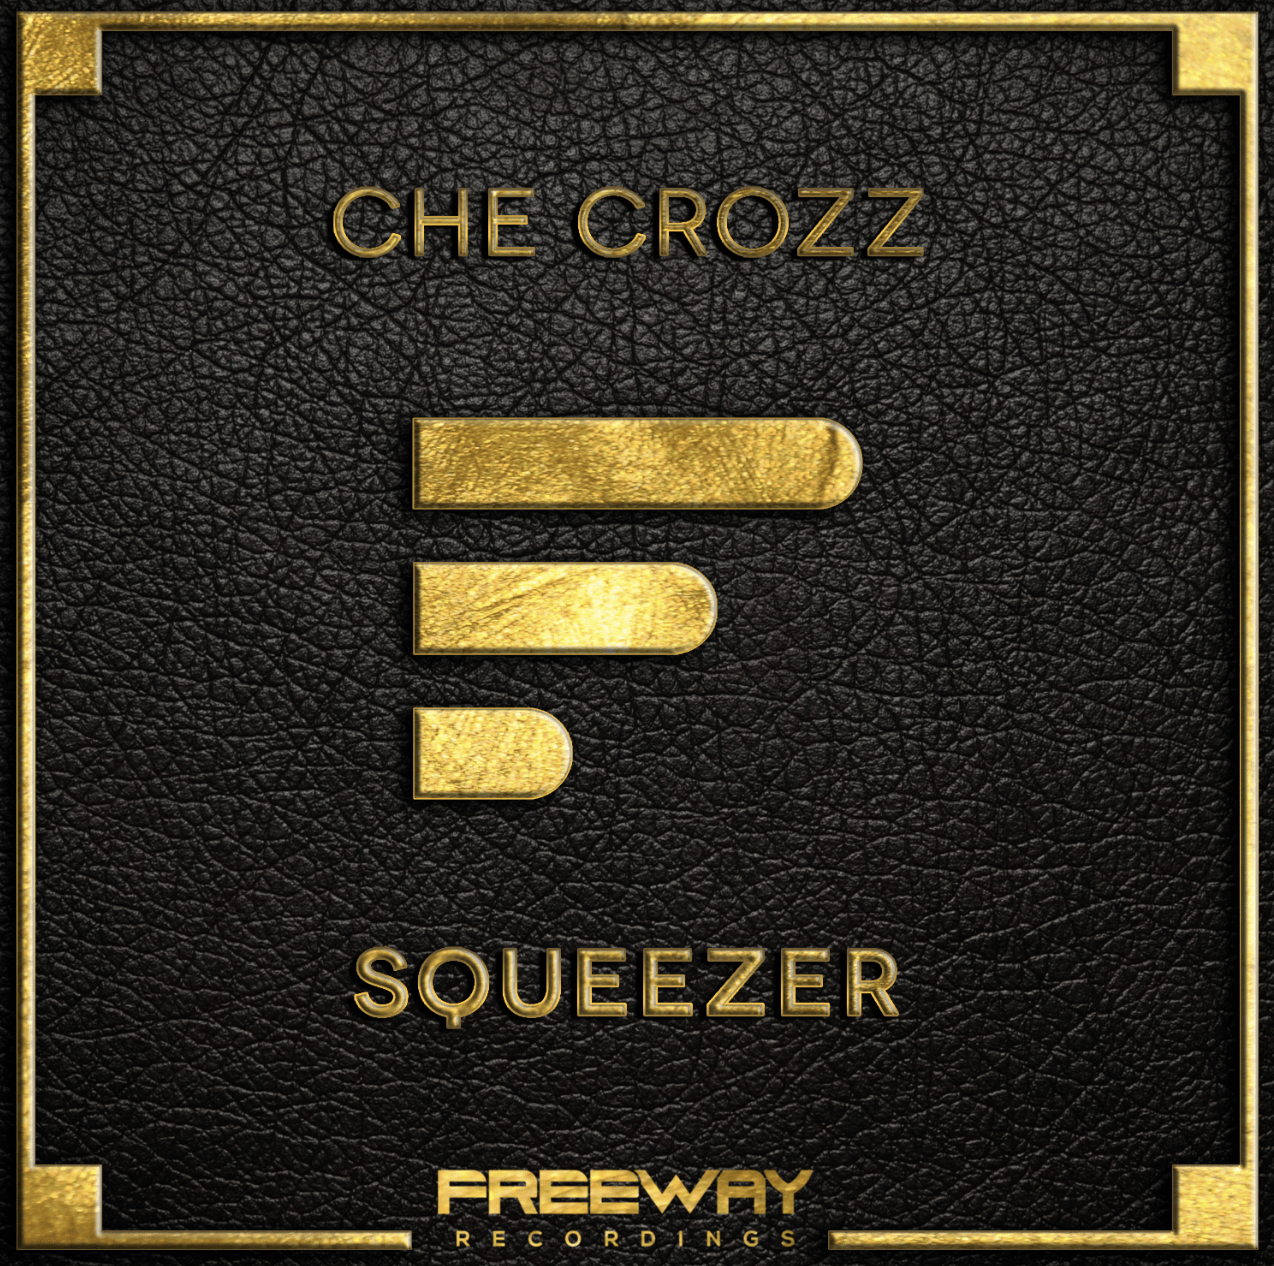 che_crozz_-_squeezer_freeway_recordings.png